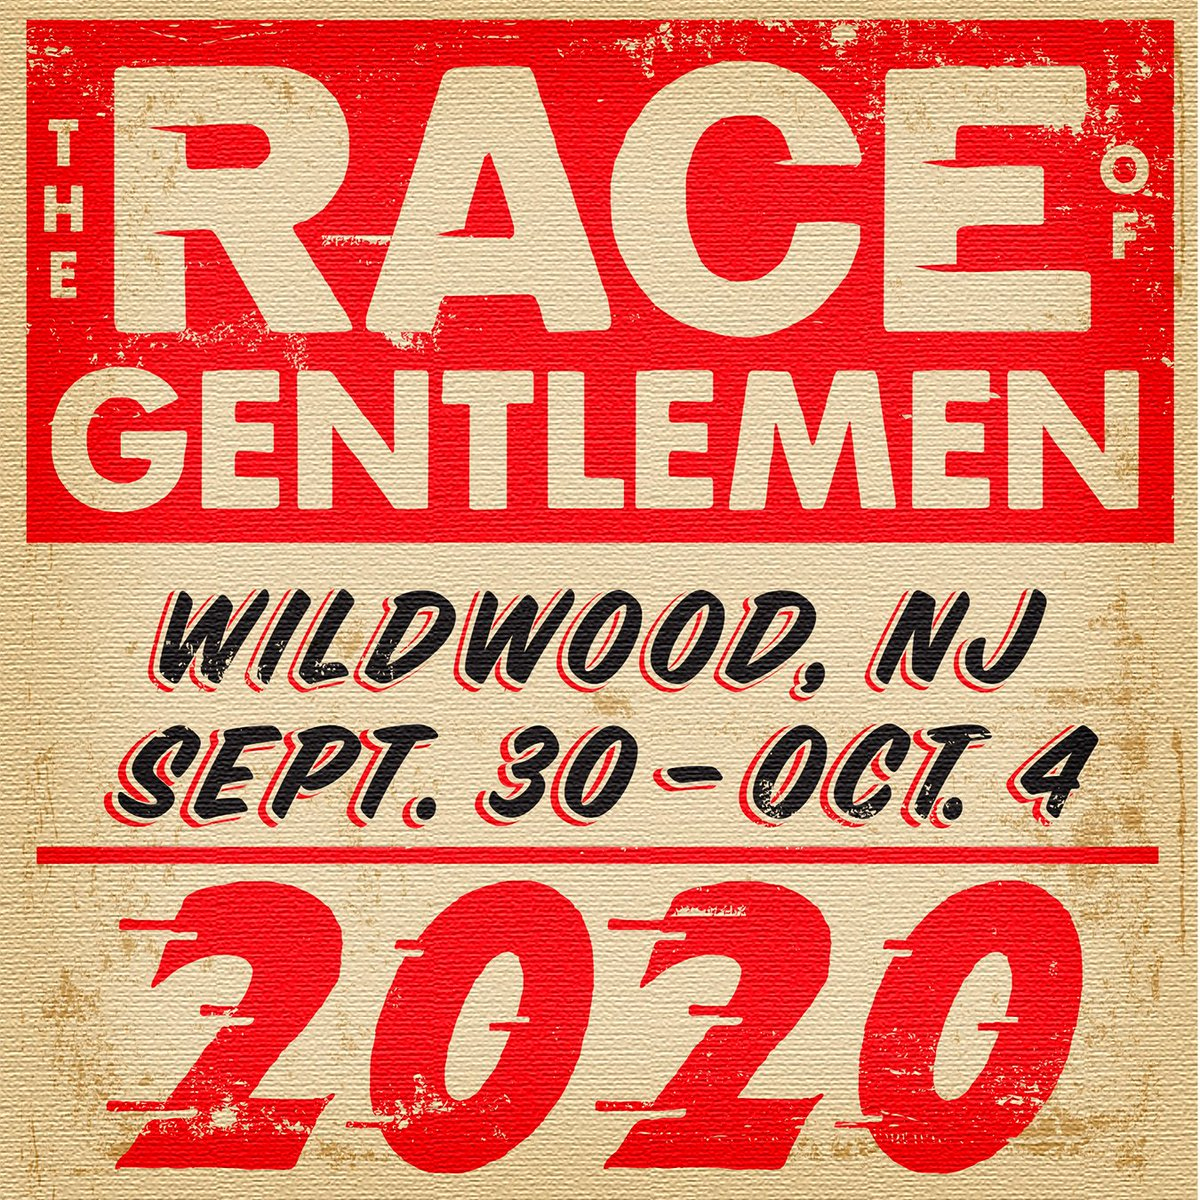 race of the gentlemen 2020